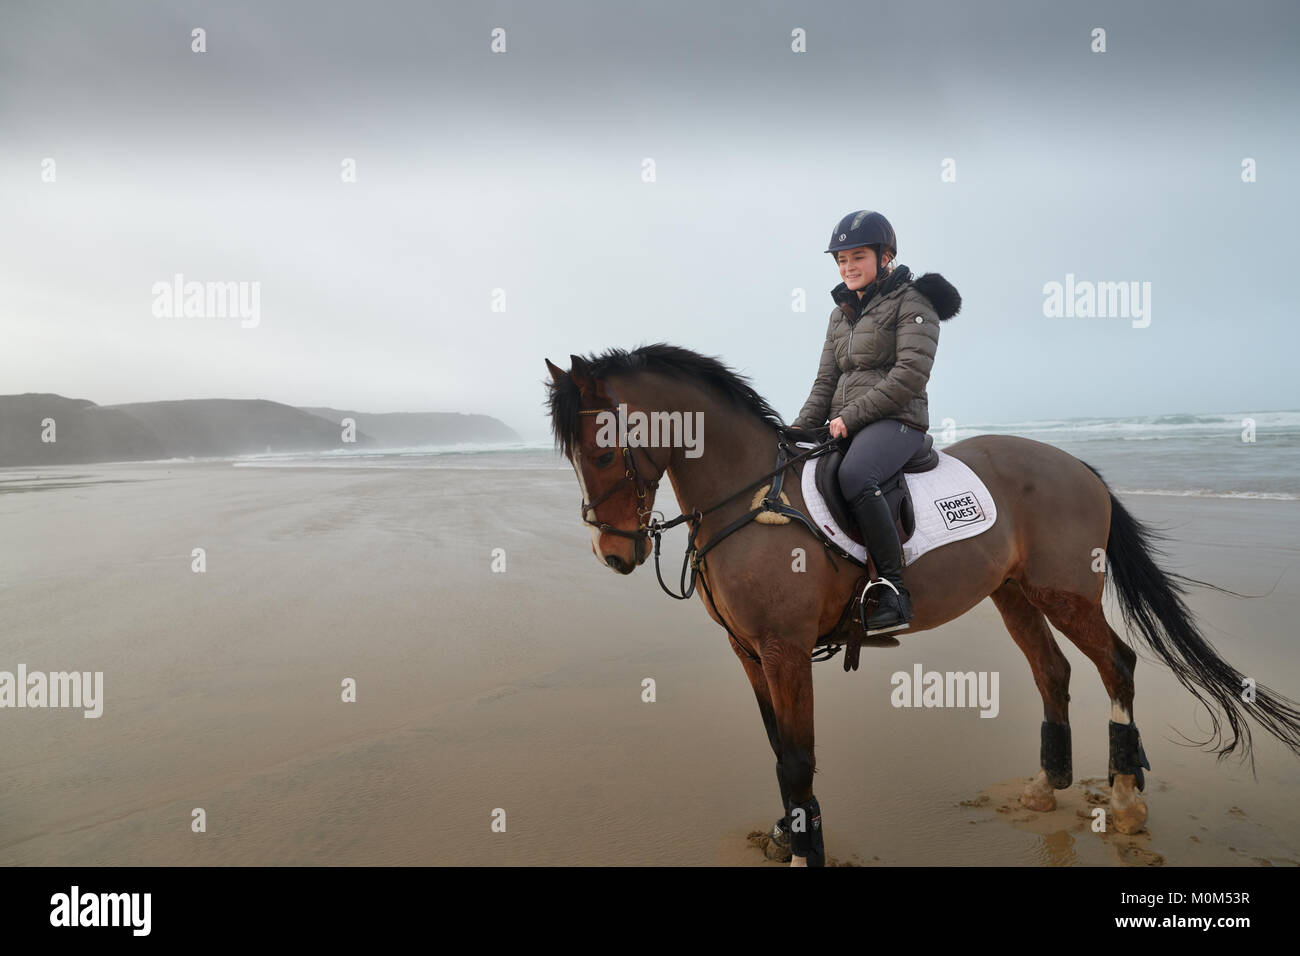 Horse rider riding away from the camera down the beach at low tide. Black & white image, with an obscured horizon - Stock Image